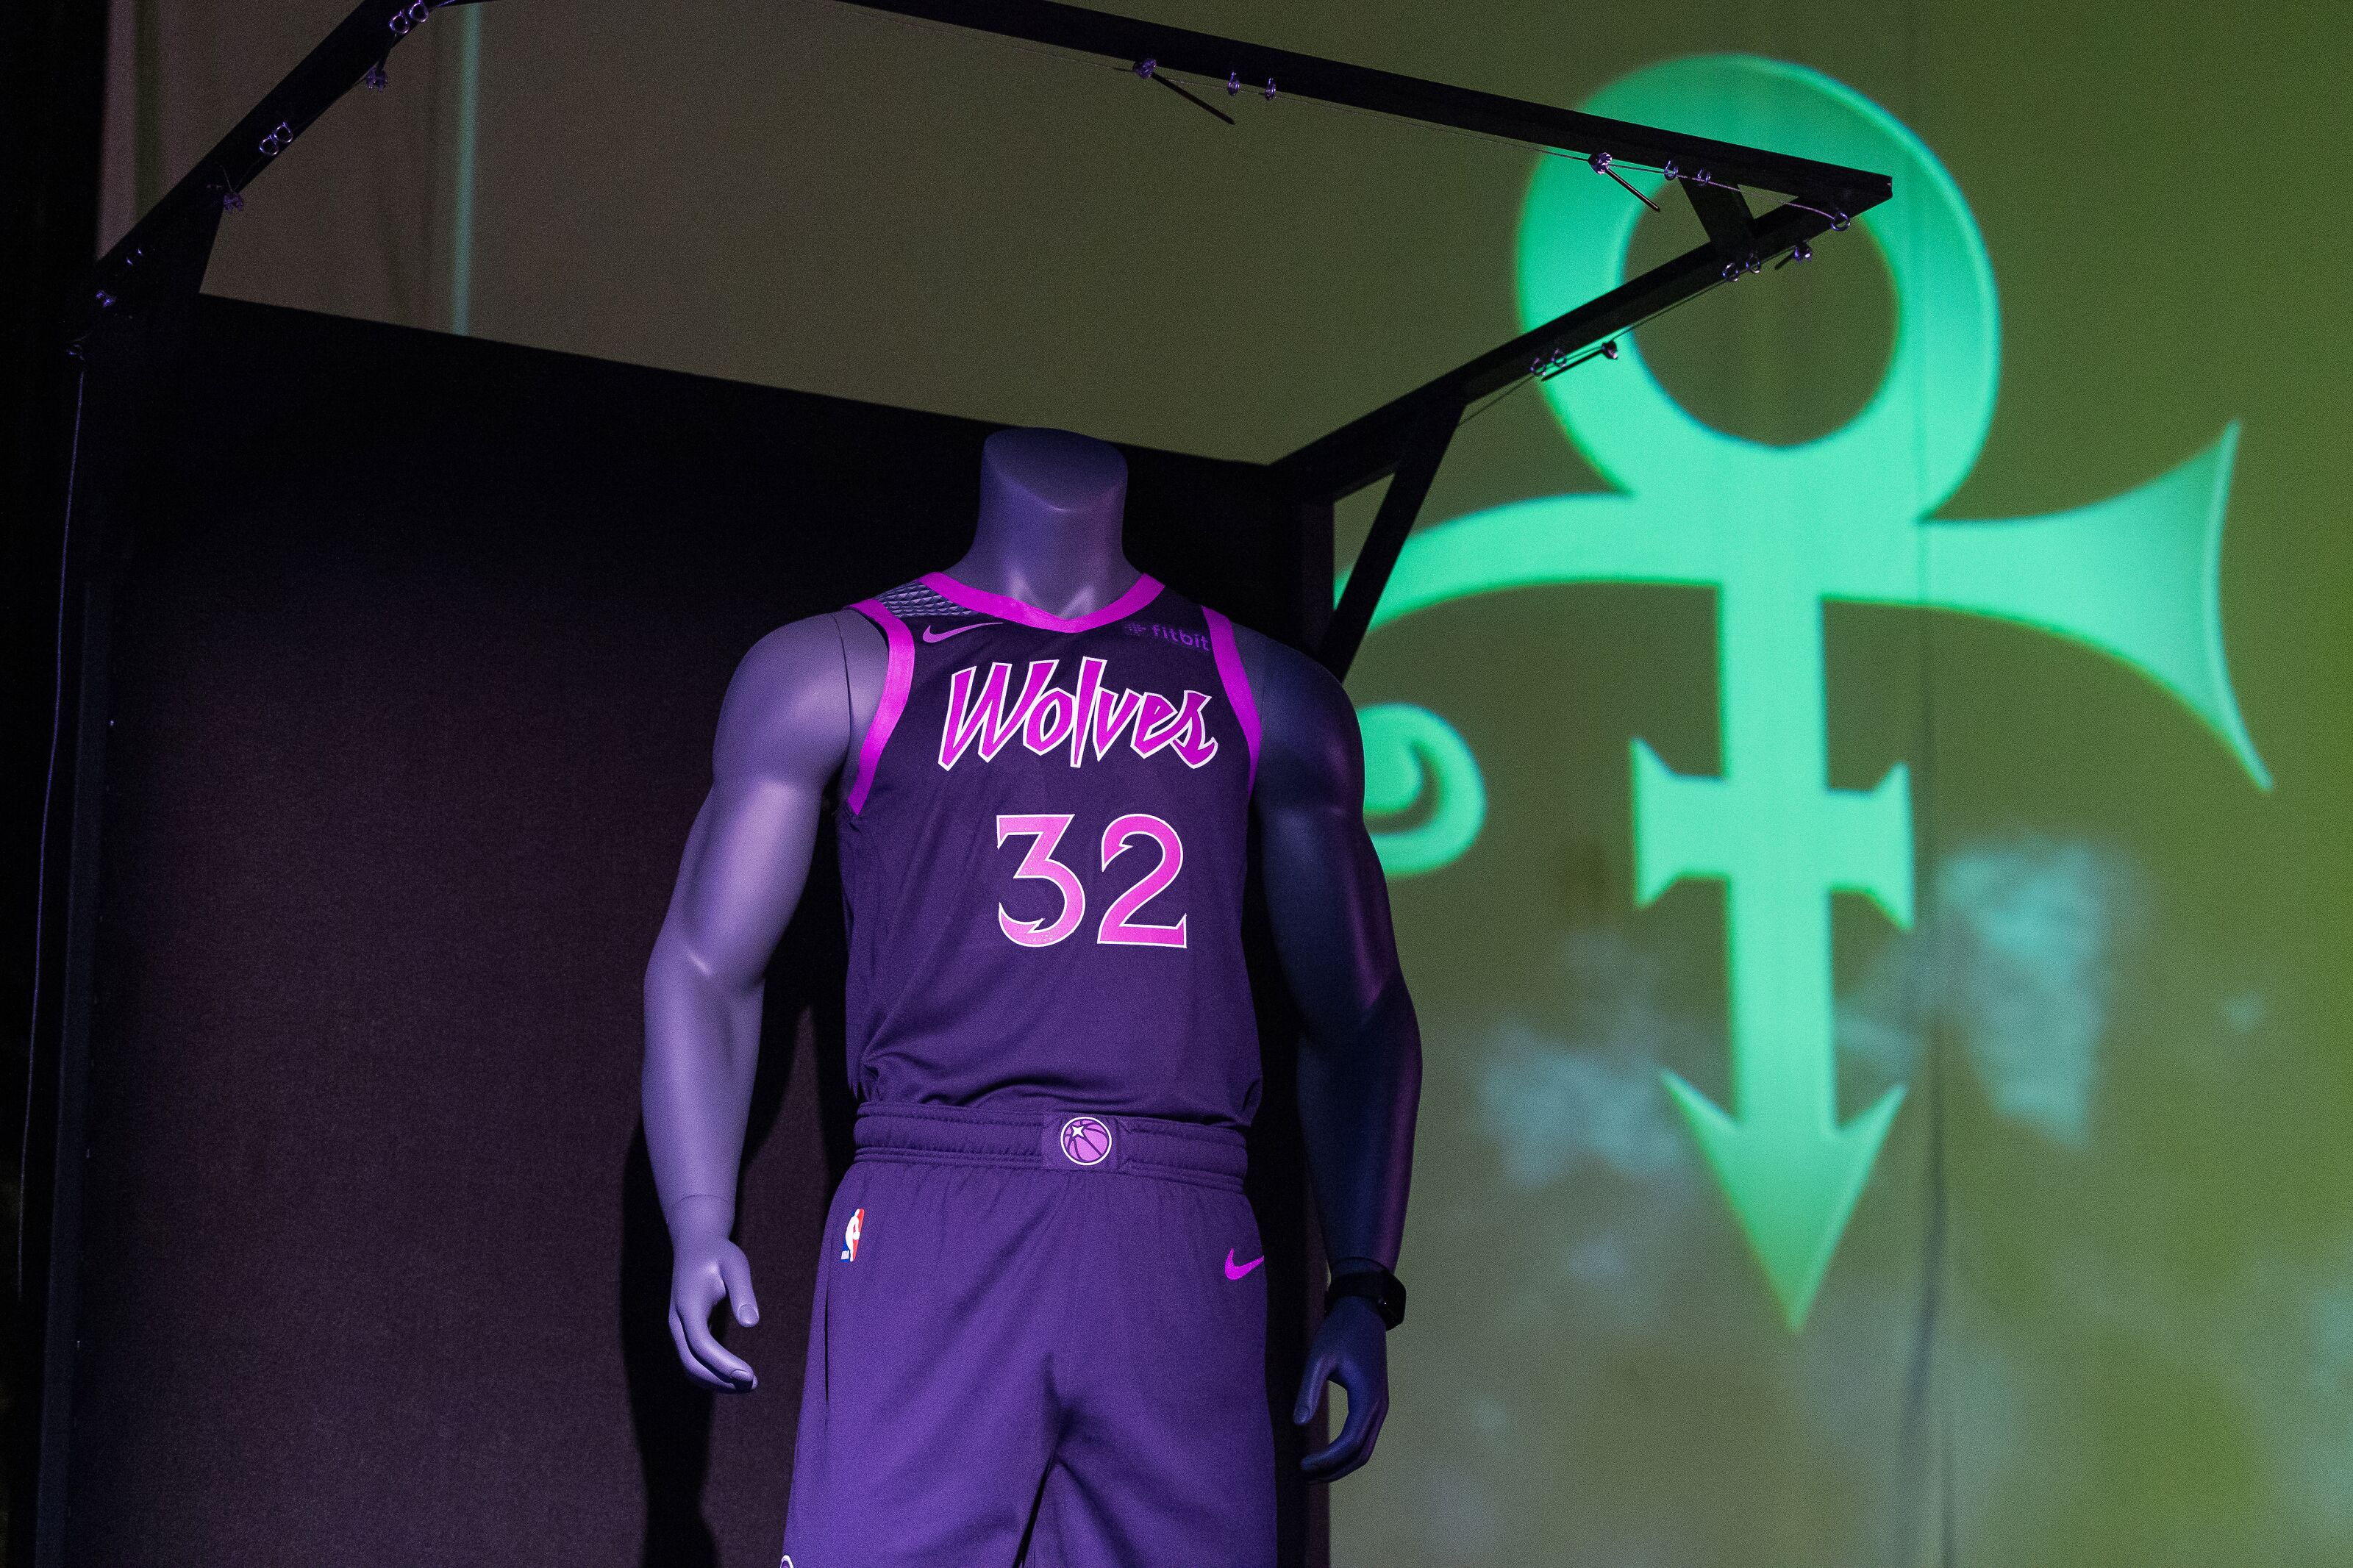 8a7fe027e Minnesota Timberwolves  Grading the new City Edition jersey